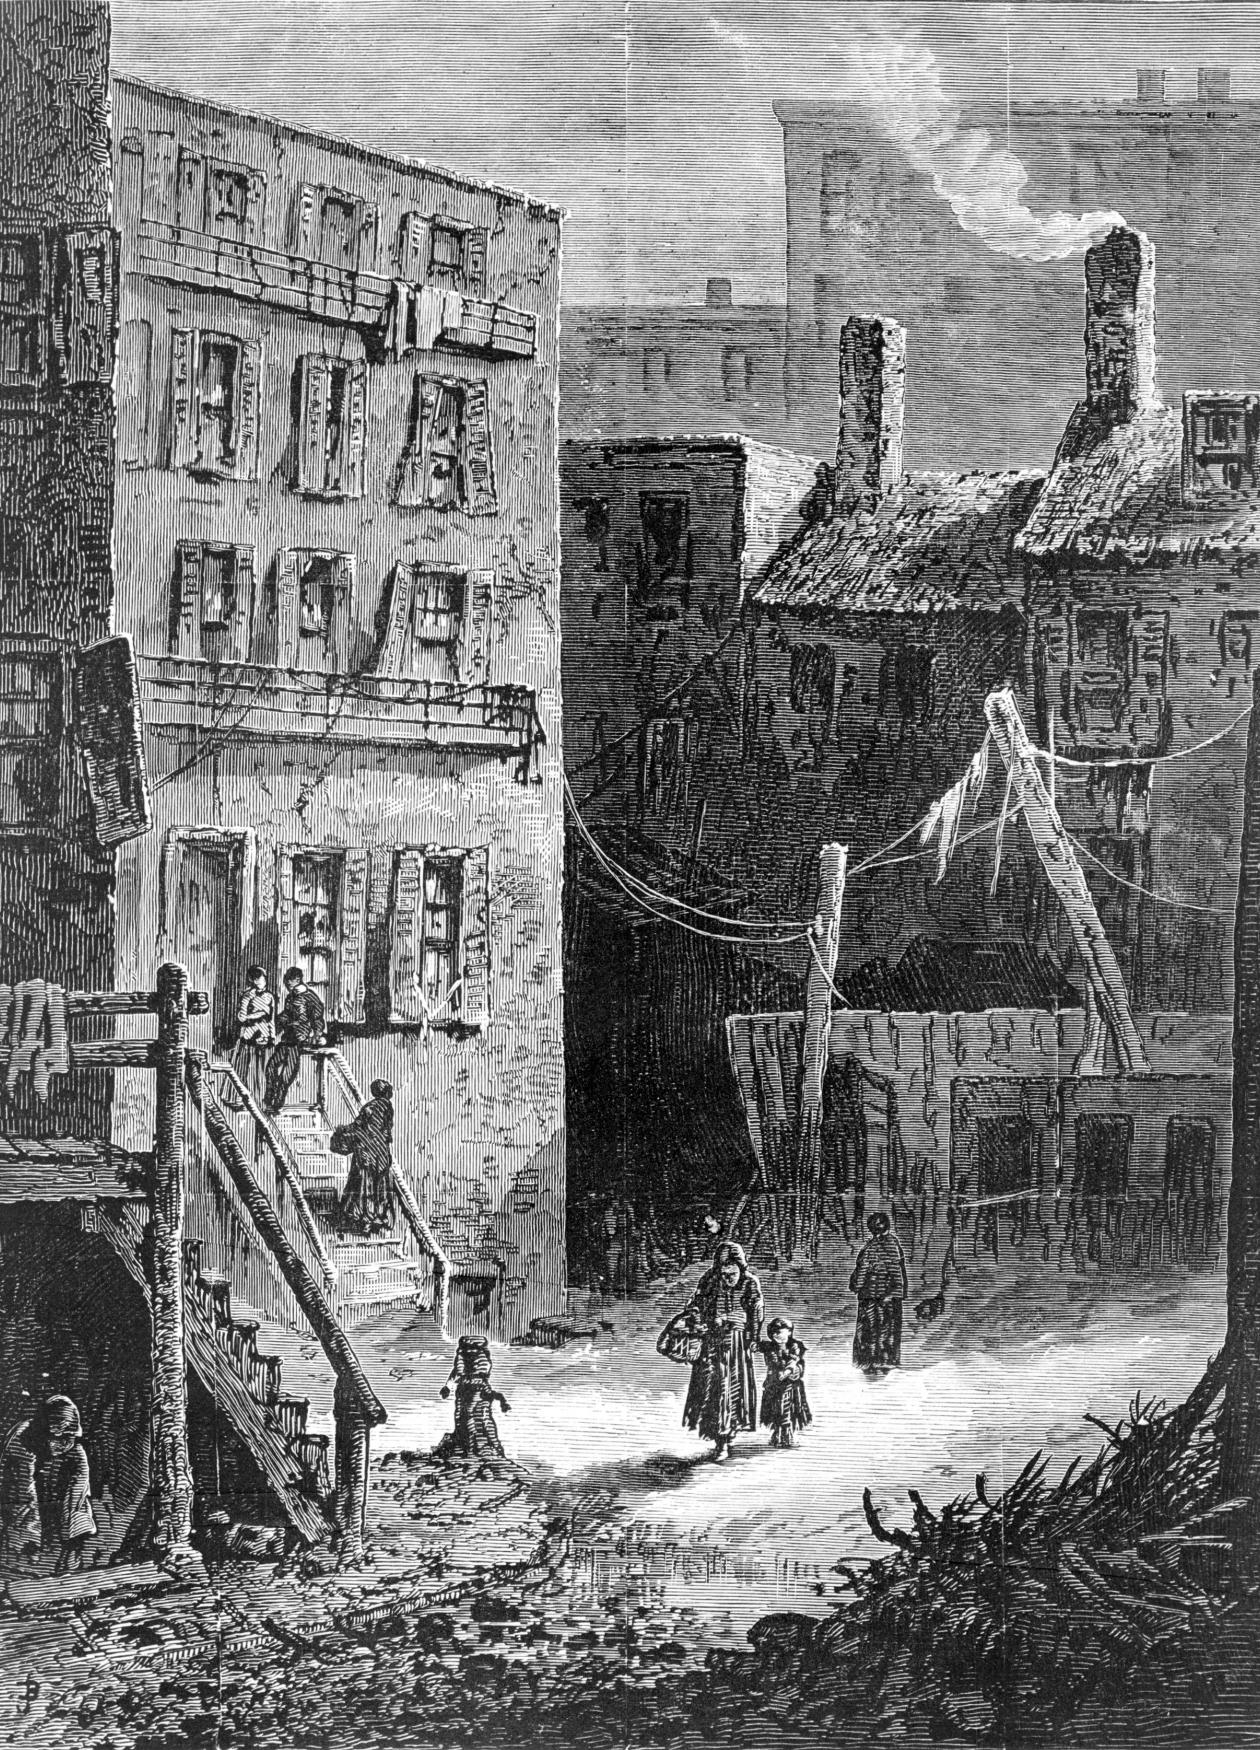 Newspaper illustration of impoverished people surrounding by buildings